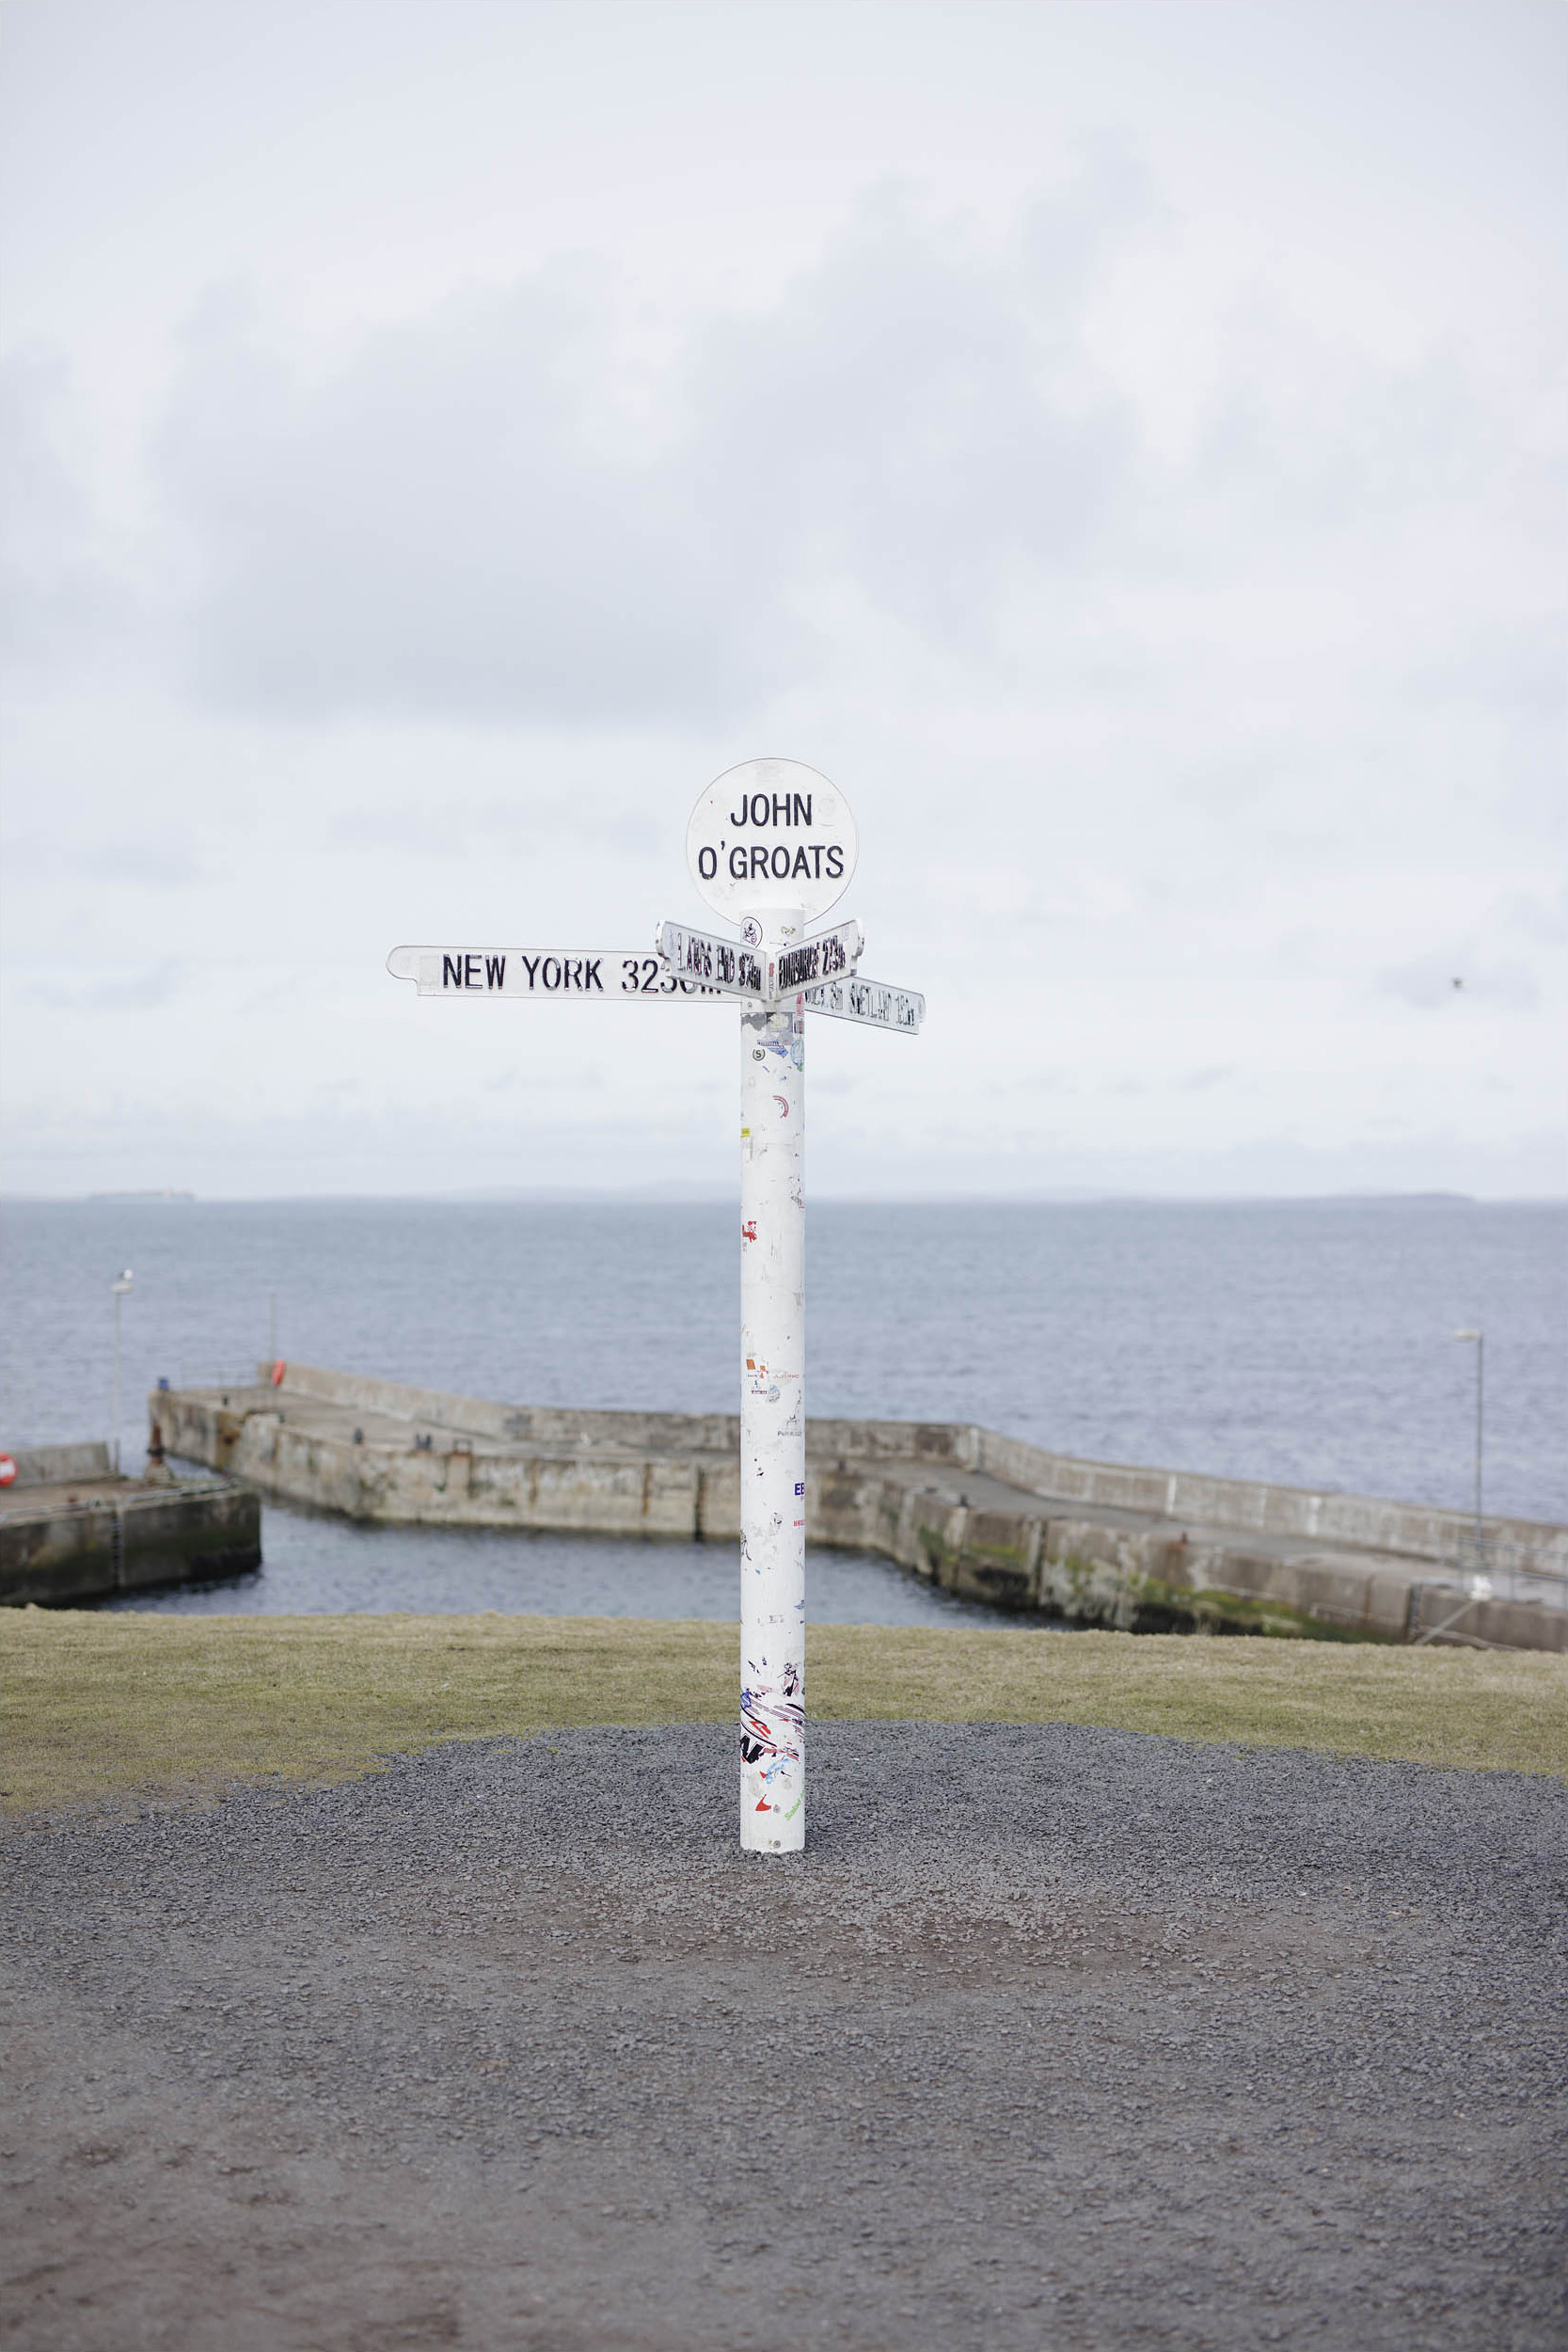 John O'Groats, Scotland, March 2019